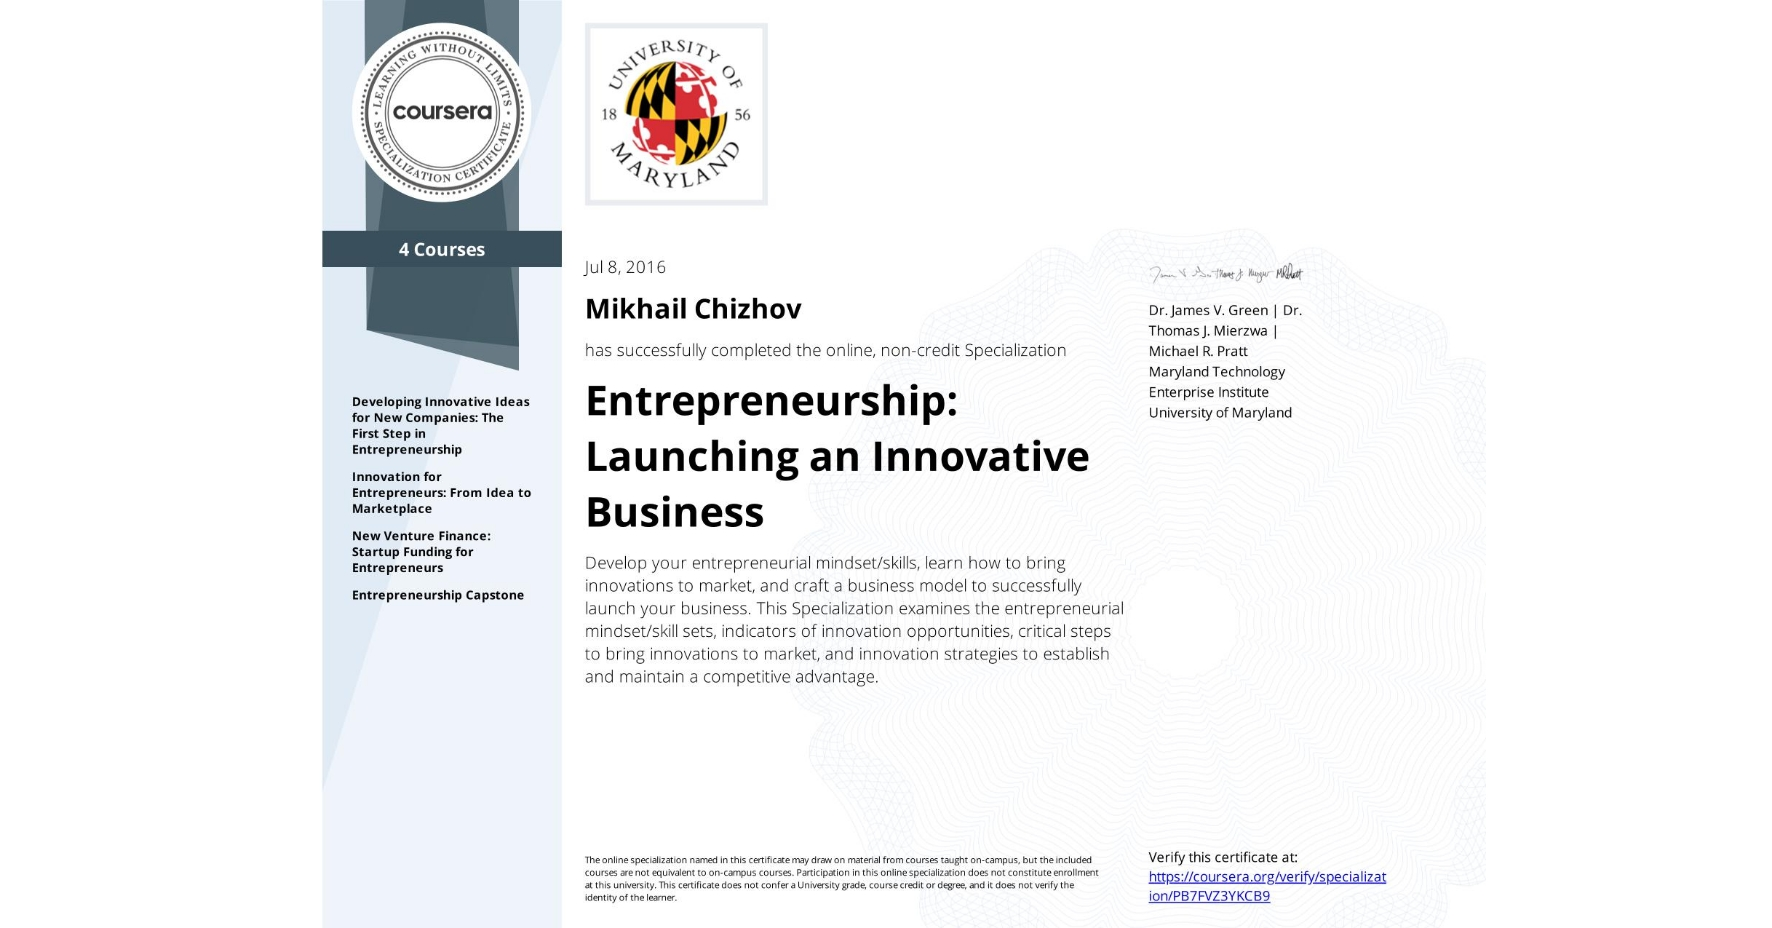 View certificate for Mikhail Chizhov, Entrepreneurship: Launching an Innovative Business, offered through Coursera. Develop your entrepreneurial mindset/skills, learn how to bring innovations to market, and craft a business model to successfully launch your business. This Specialization examines the entrepreneurial mindset/skill sets, indicators of innovation opportunities, critical steps to bring innovations to market, and innovation strategies to establish and maintain a competitive advantage.